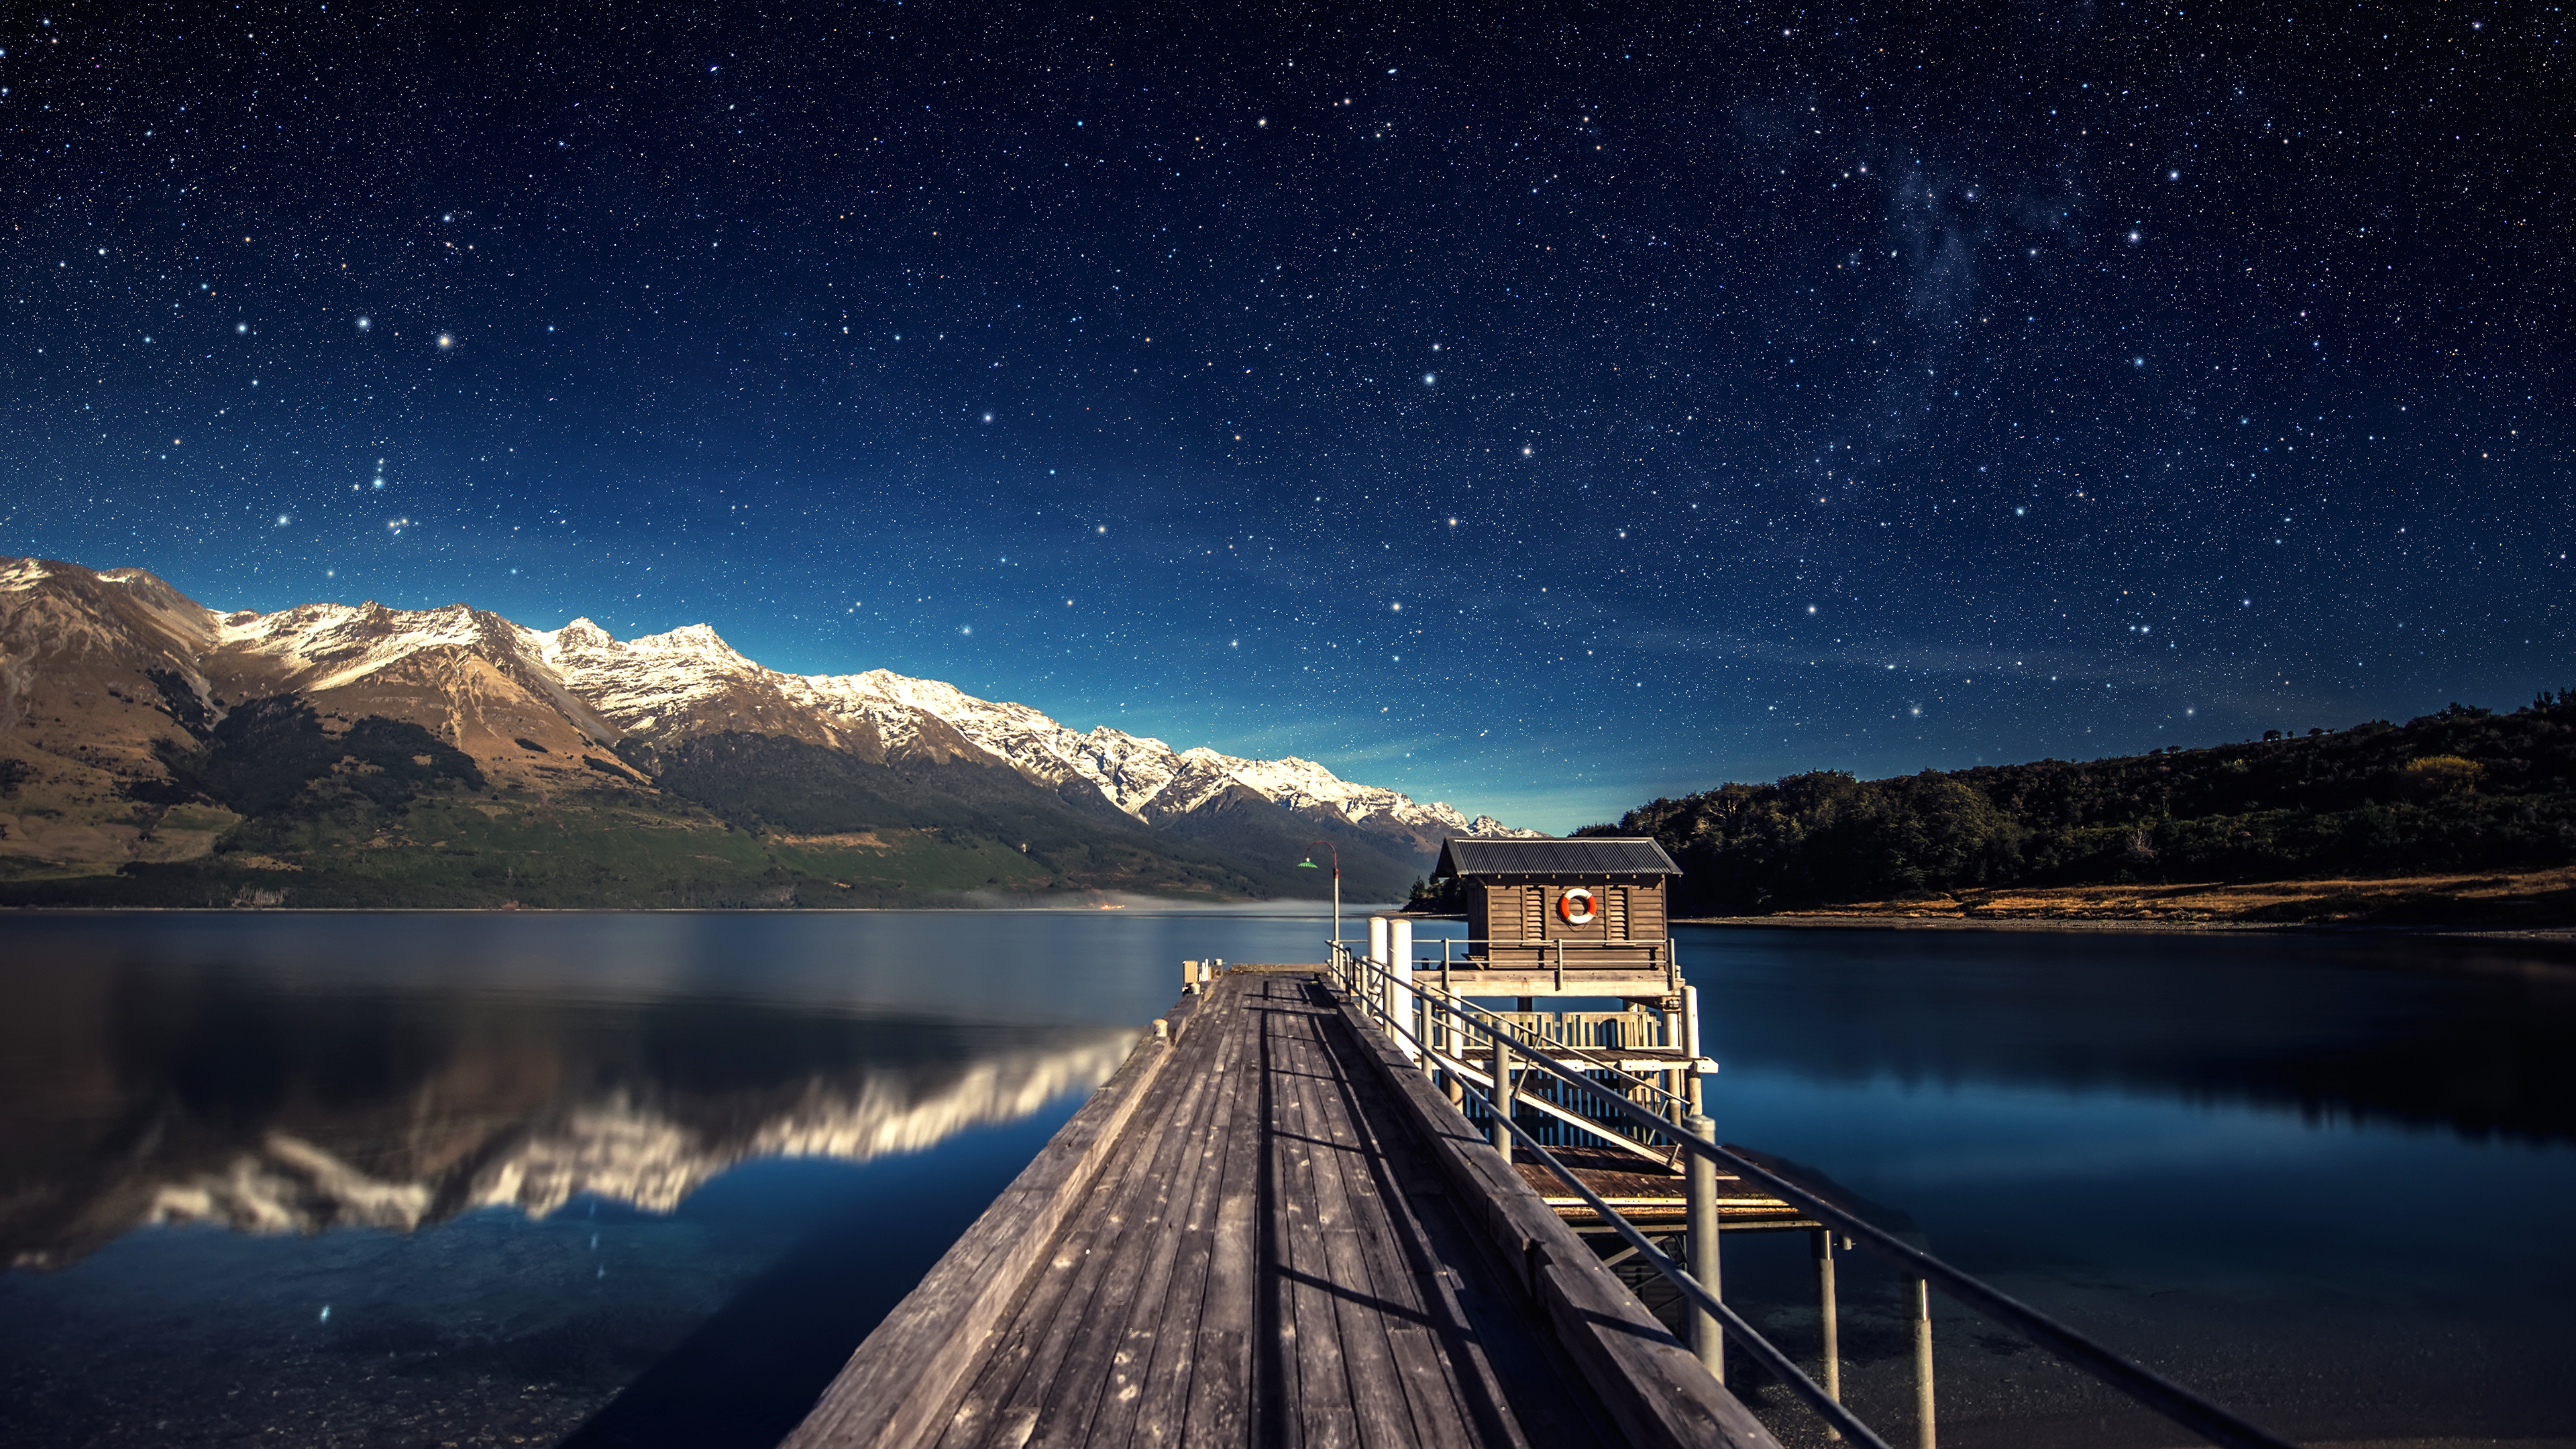 General 3840x2160 landscape stars mountains water night lake nature horizon 500px calm waters snowy peak outdoors reflection